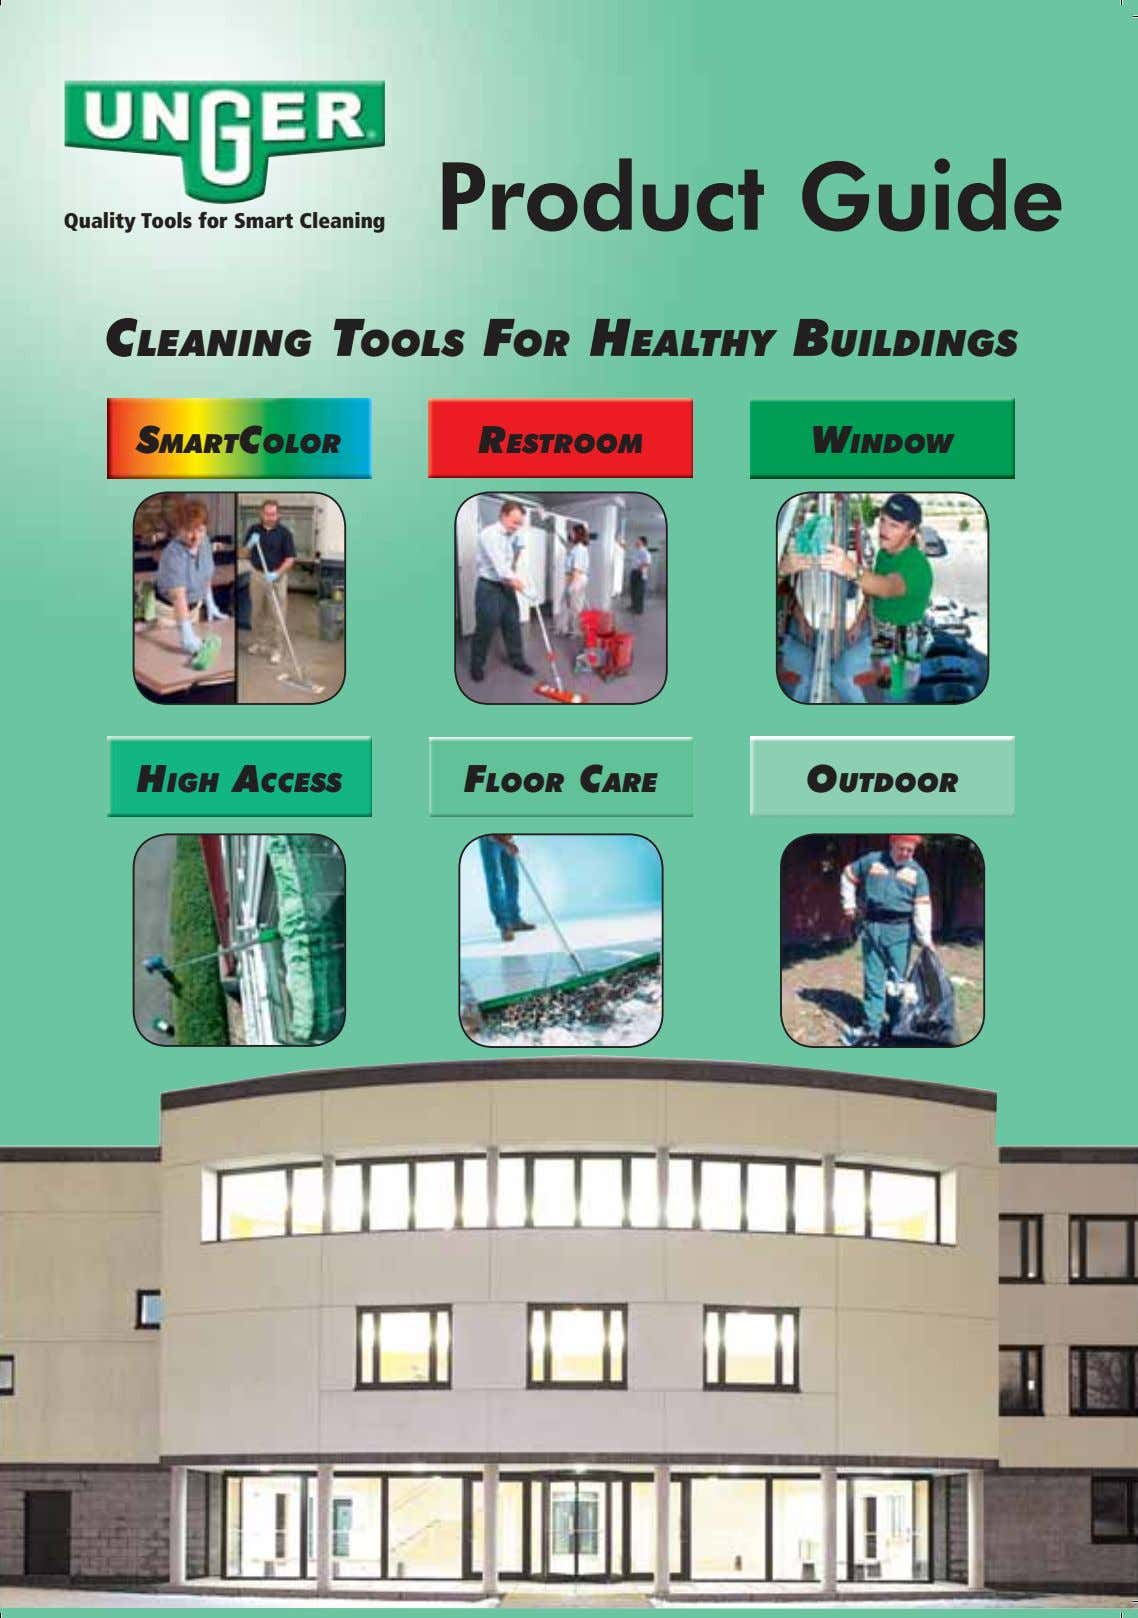 Product Guide Quality Tools for Smart Cleaning CLEANING TOOLS FOR HEALTHY BUILDINGS SMARTCOLOR RESTROOM WINDOW